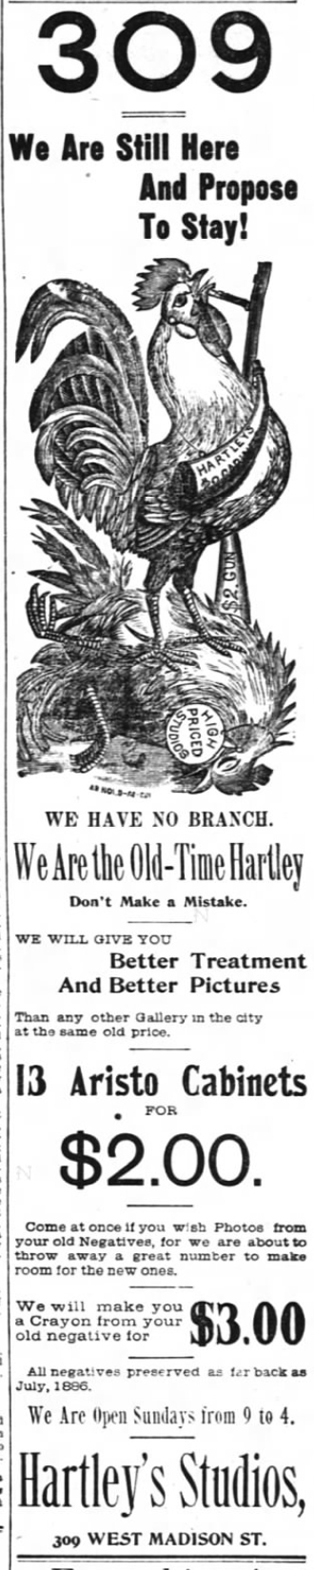 1894 Feb 4 OLD HARTLEY advert The Inter Ocean